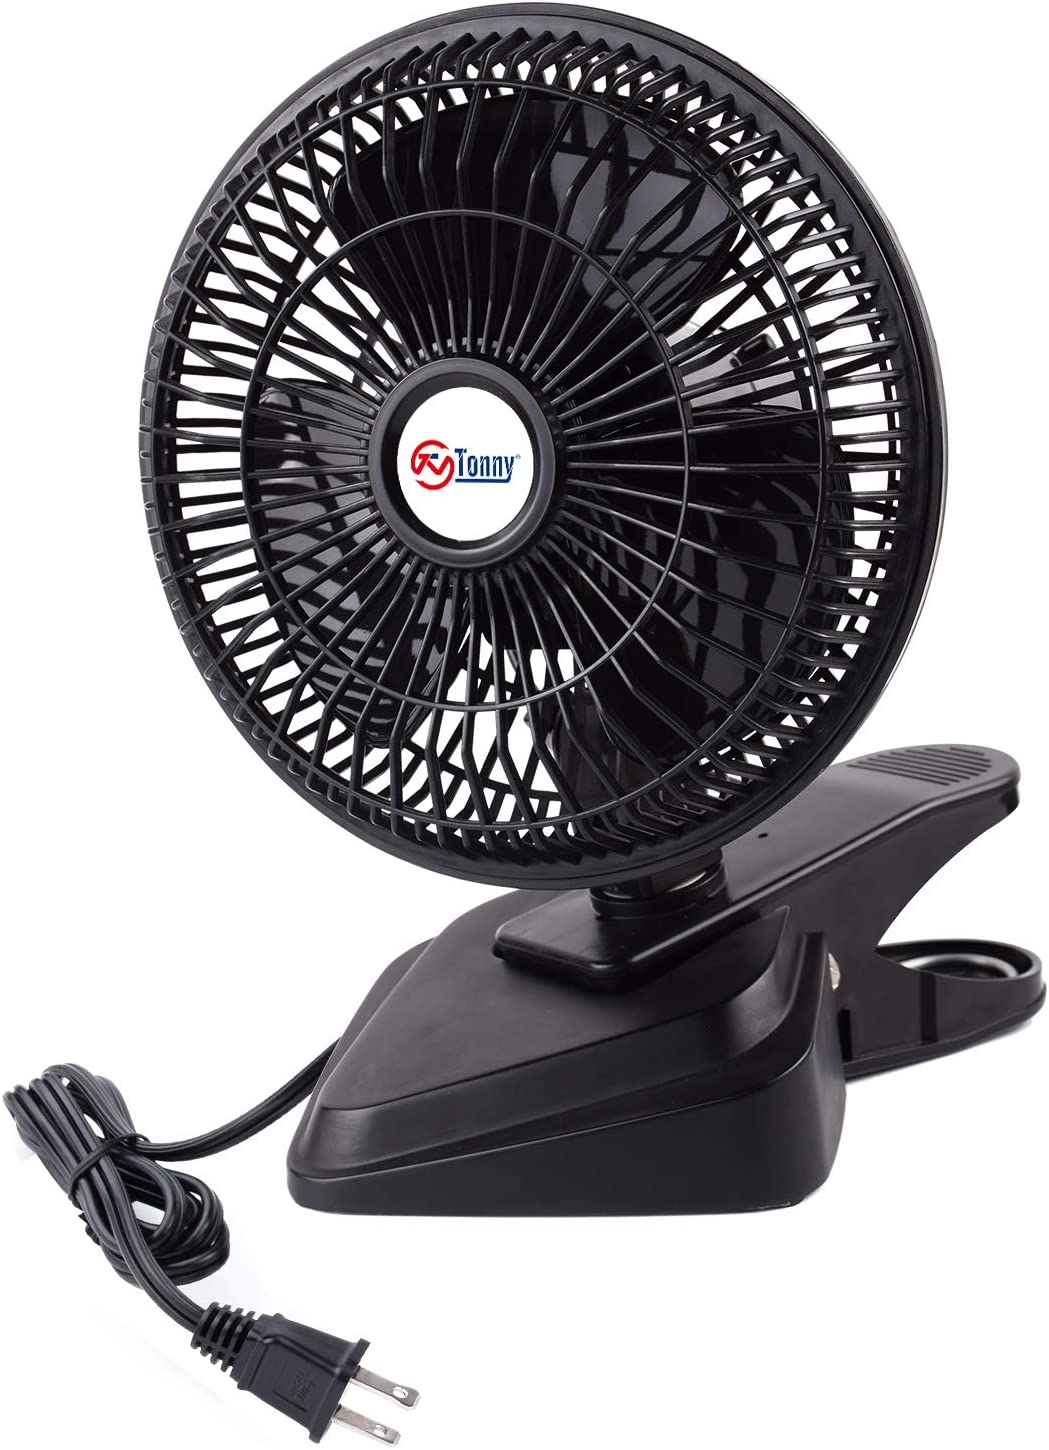 TN TONNY Convertible 6-Inch Desk & Clip Fan Two Quiet Speeds, Household Table Fans with 4 Feet Cord, Ideal For The Home, Office, Dorm, Black